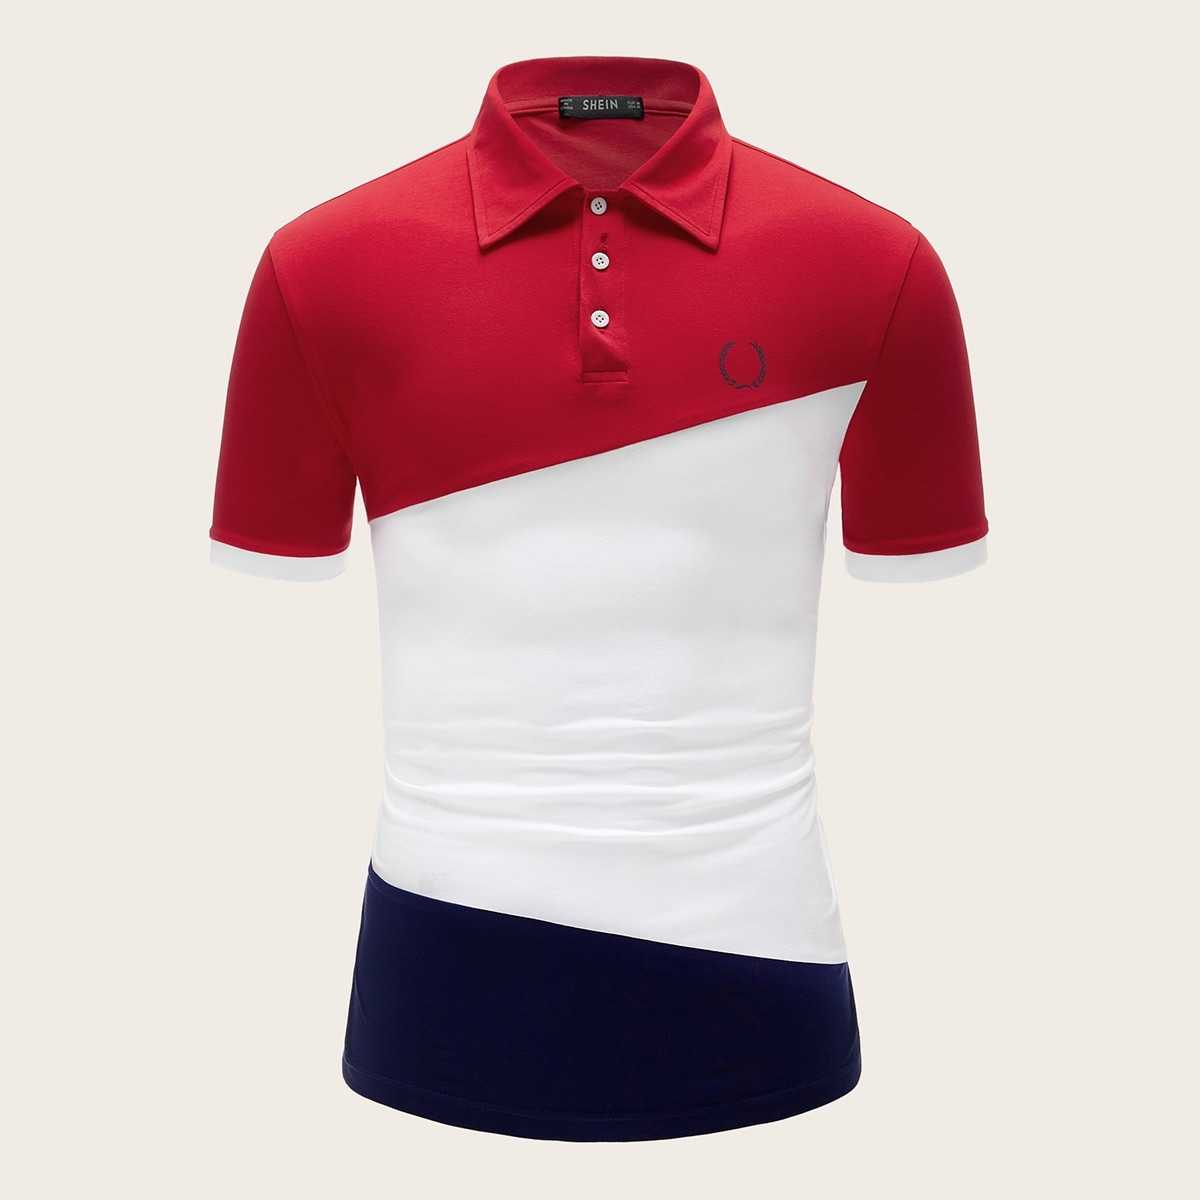 Guys Contrast Cuff Colorblock Polo Shirt in Multicolor by ROMWE on GOOFASH